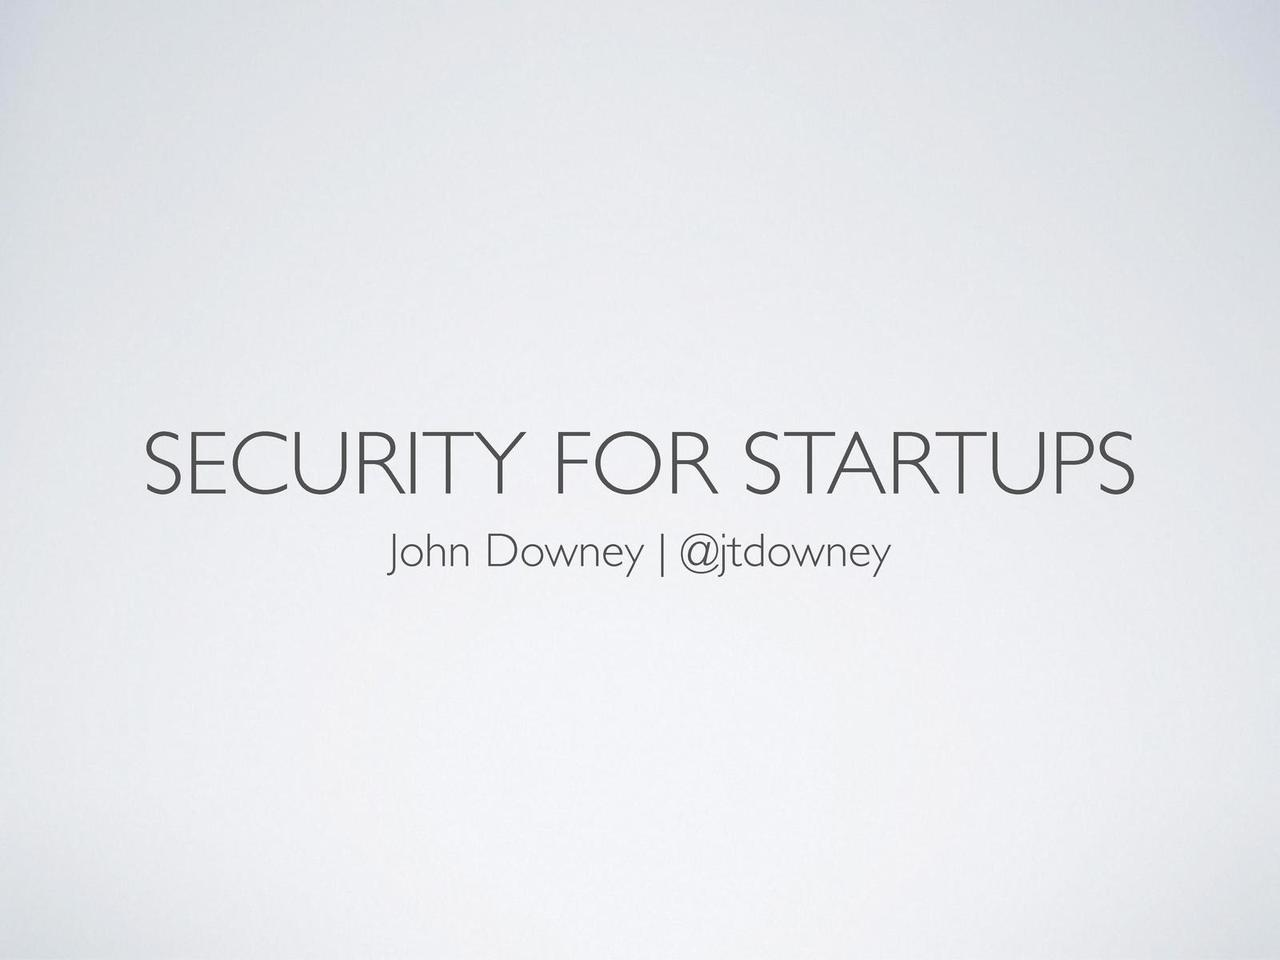 Security for Startups - ChicagoRuby/1871